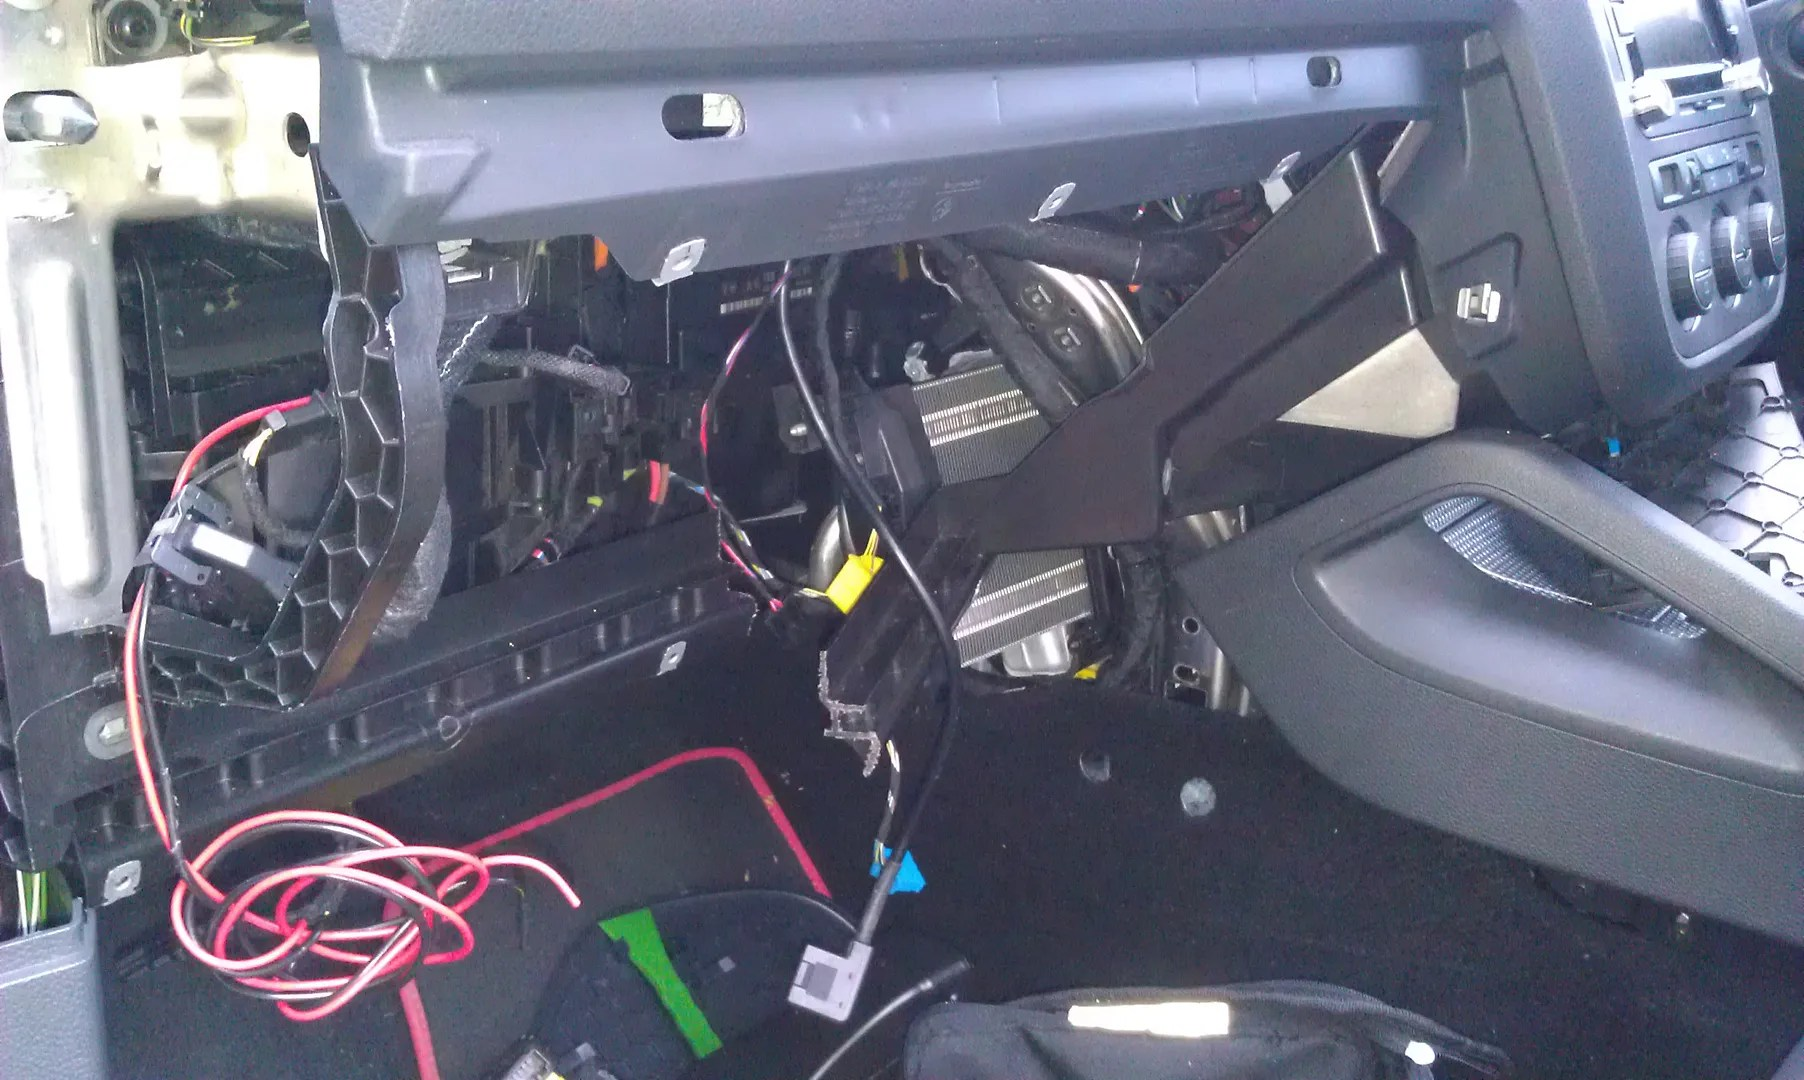 2014 Volkswagen Jetta Fuse Box Diagram Auxiliary Heater Removal Audio Electrics And Lighting